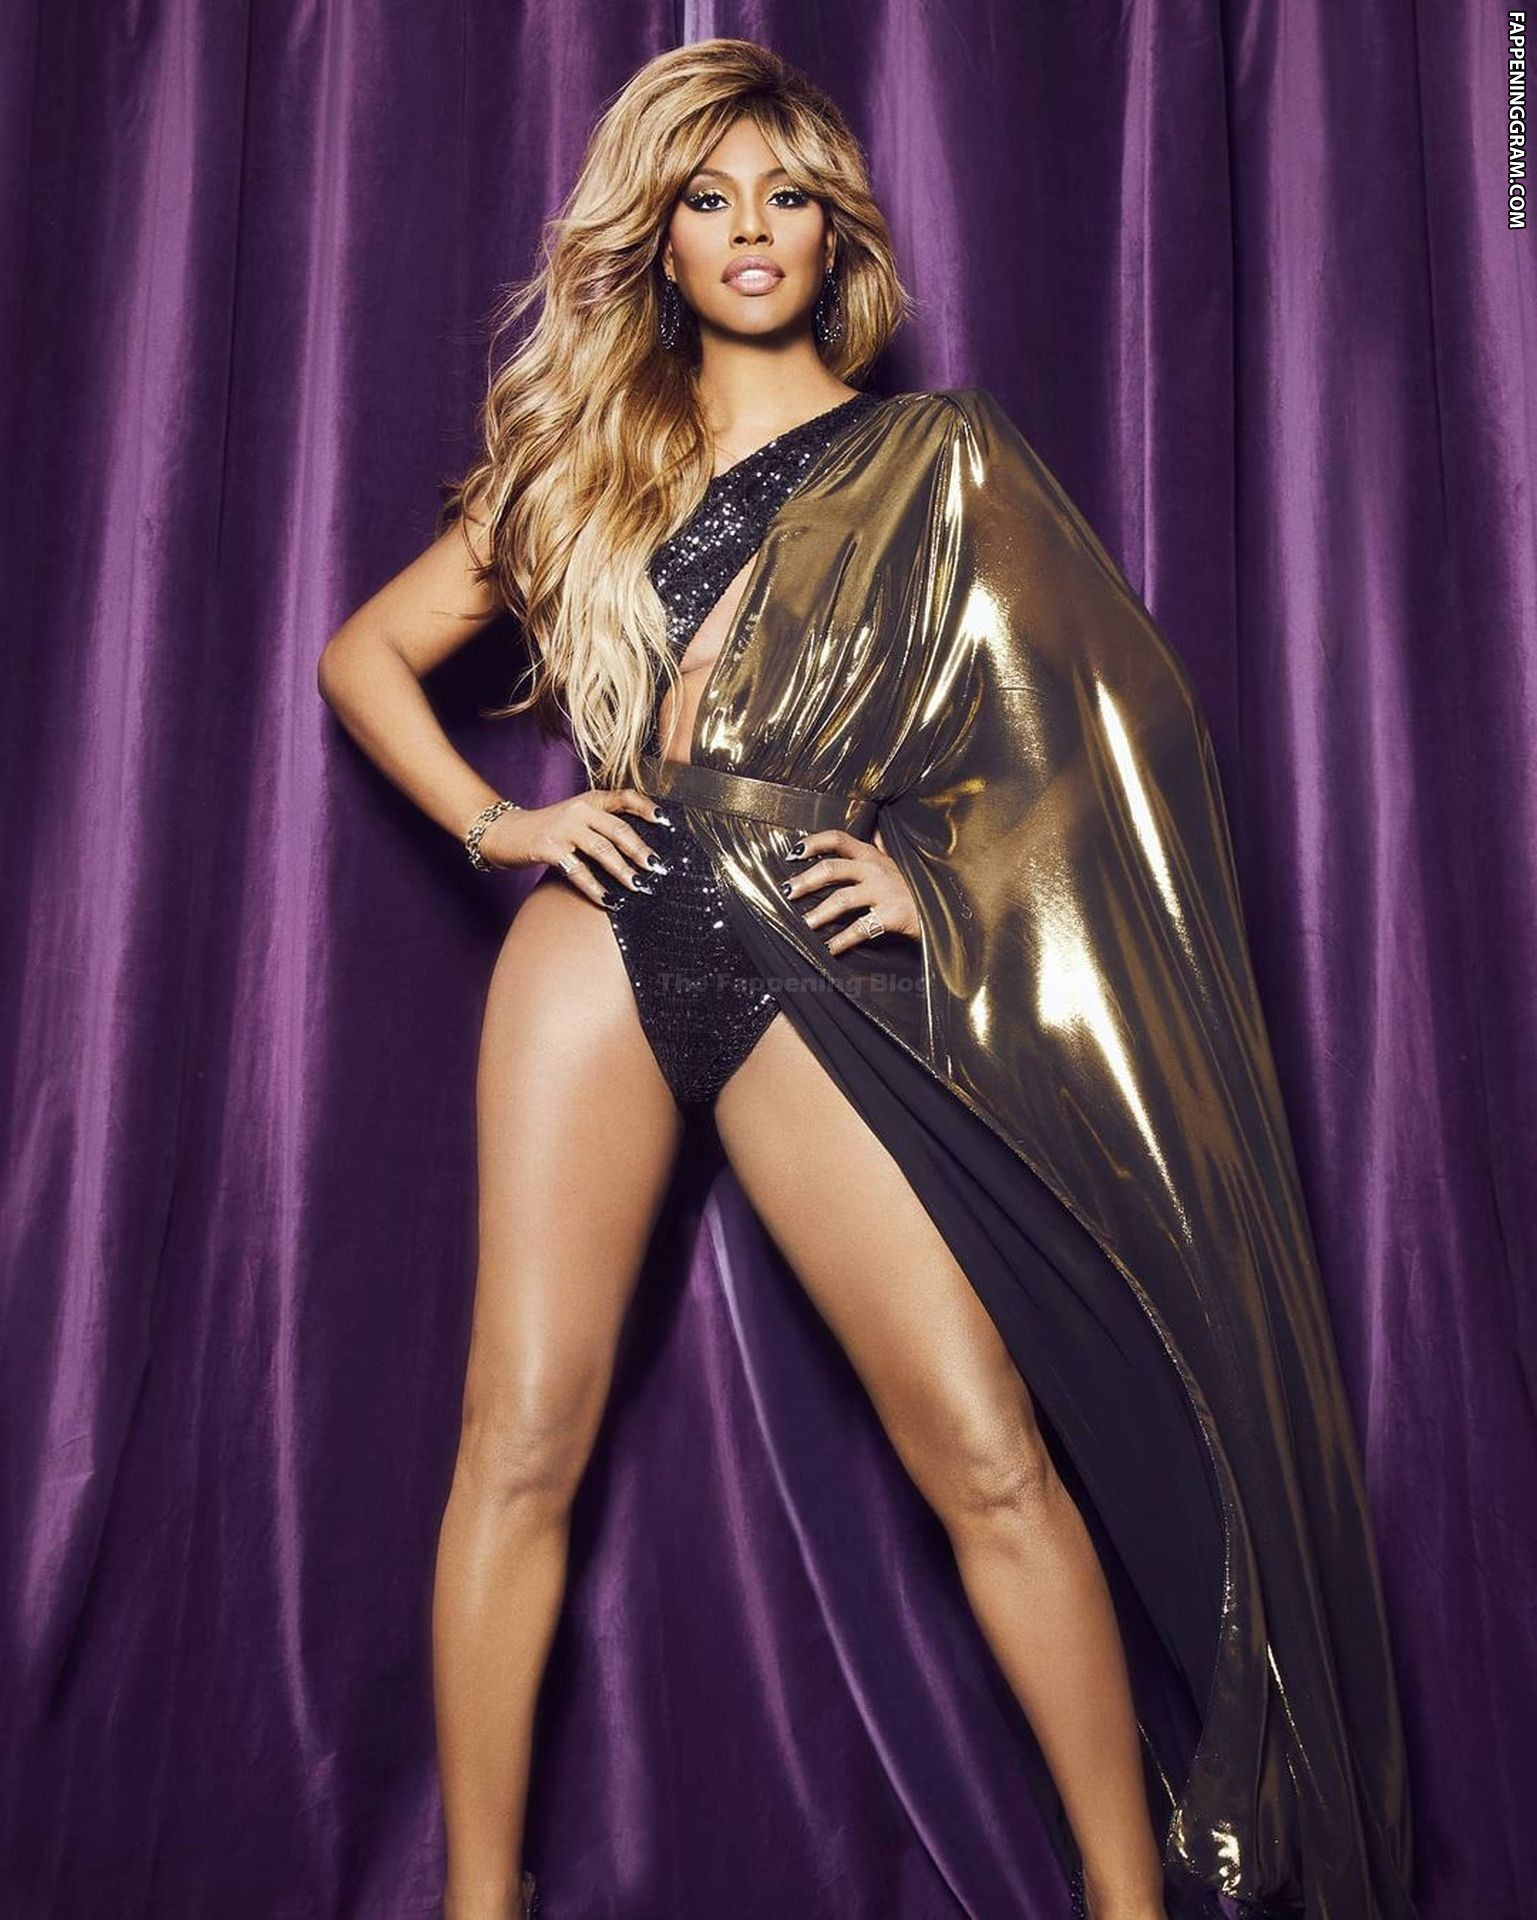 Laverne Cox Nude, Sexy, The Fappening, Uncensored - Photo